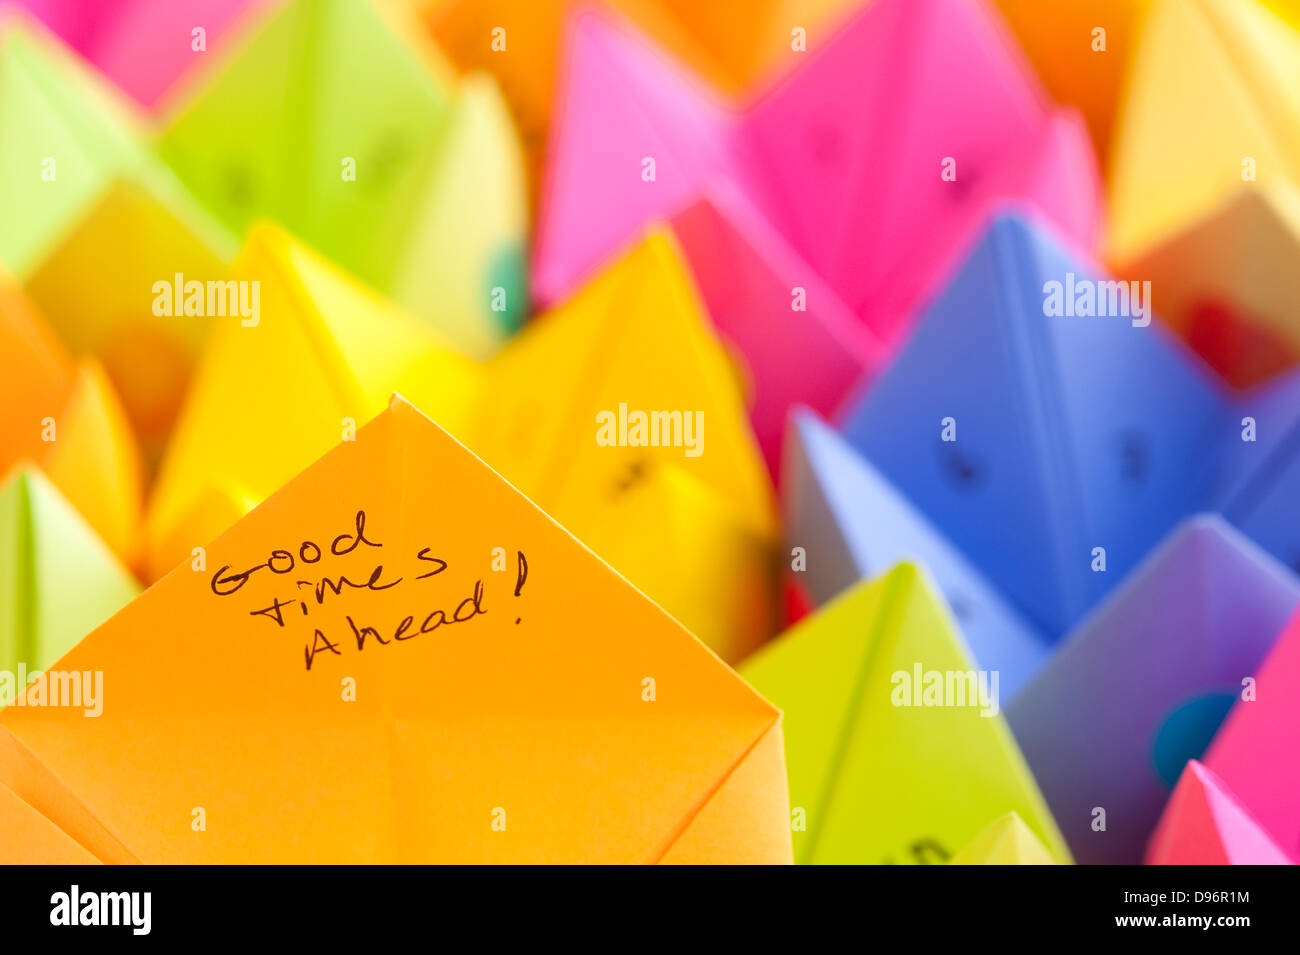 Fortune teller game stock photos fortune teller game stock multicolored cootie catchers with numbers and positive words of encouragement game of chance stock image jeuxipadfo Images